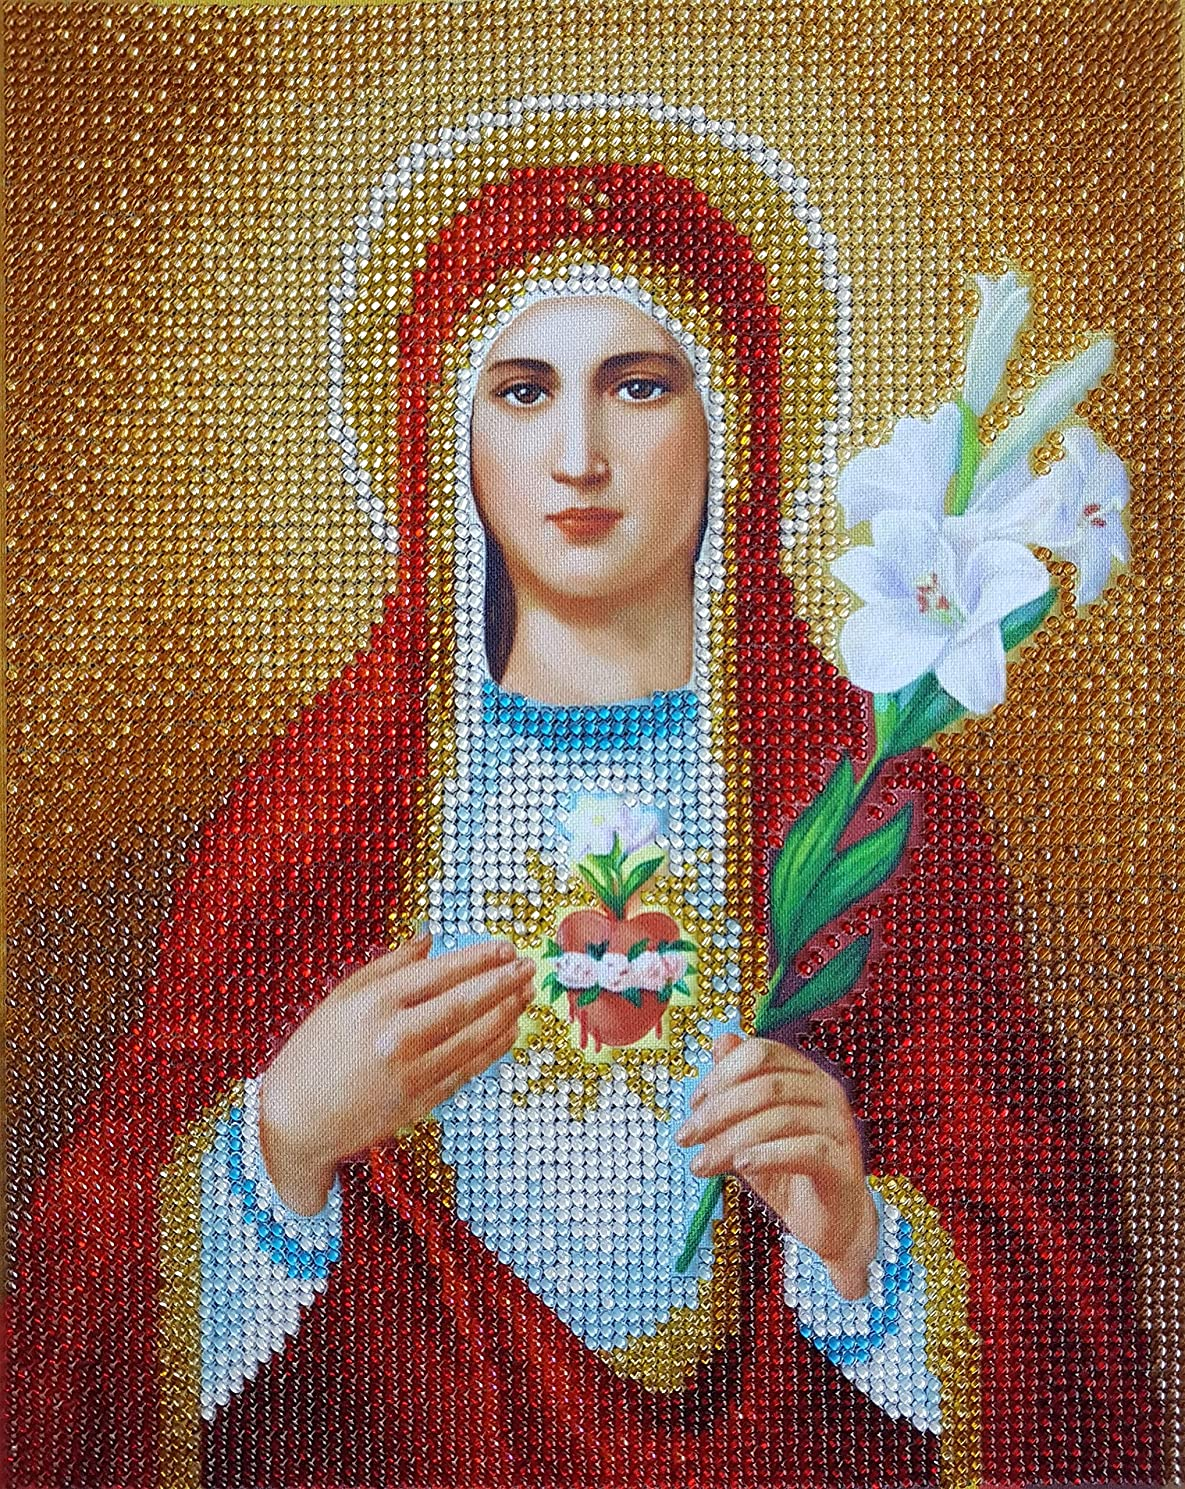 Immaculate Heart of Mary Bead Embroidery kit Religion Catholic Icon DIY Needlepoint Tapestry Kits Beaded Cross Stitch Virgin Mary Our Lady